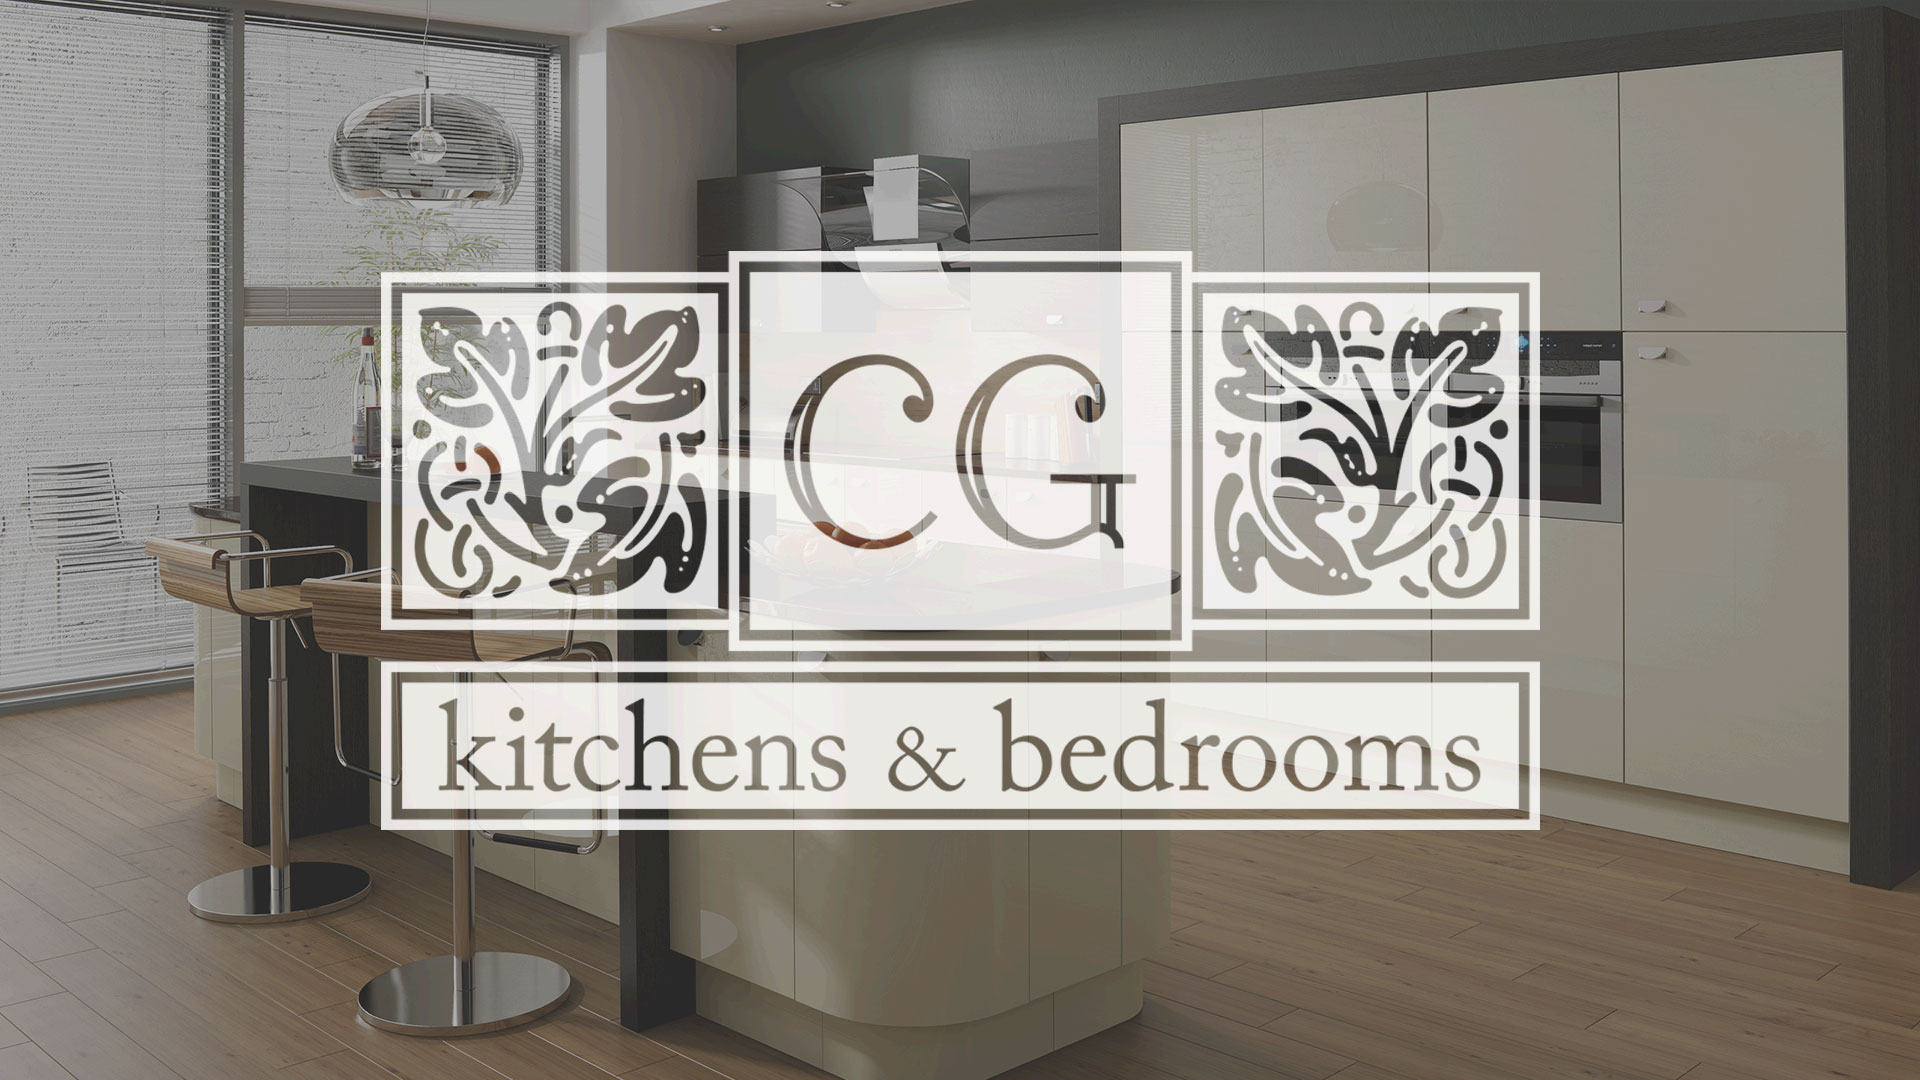 Portfolio: CG Kitchens and Bedrooms